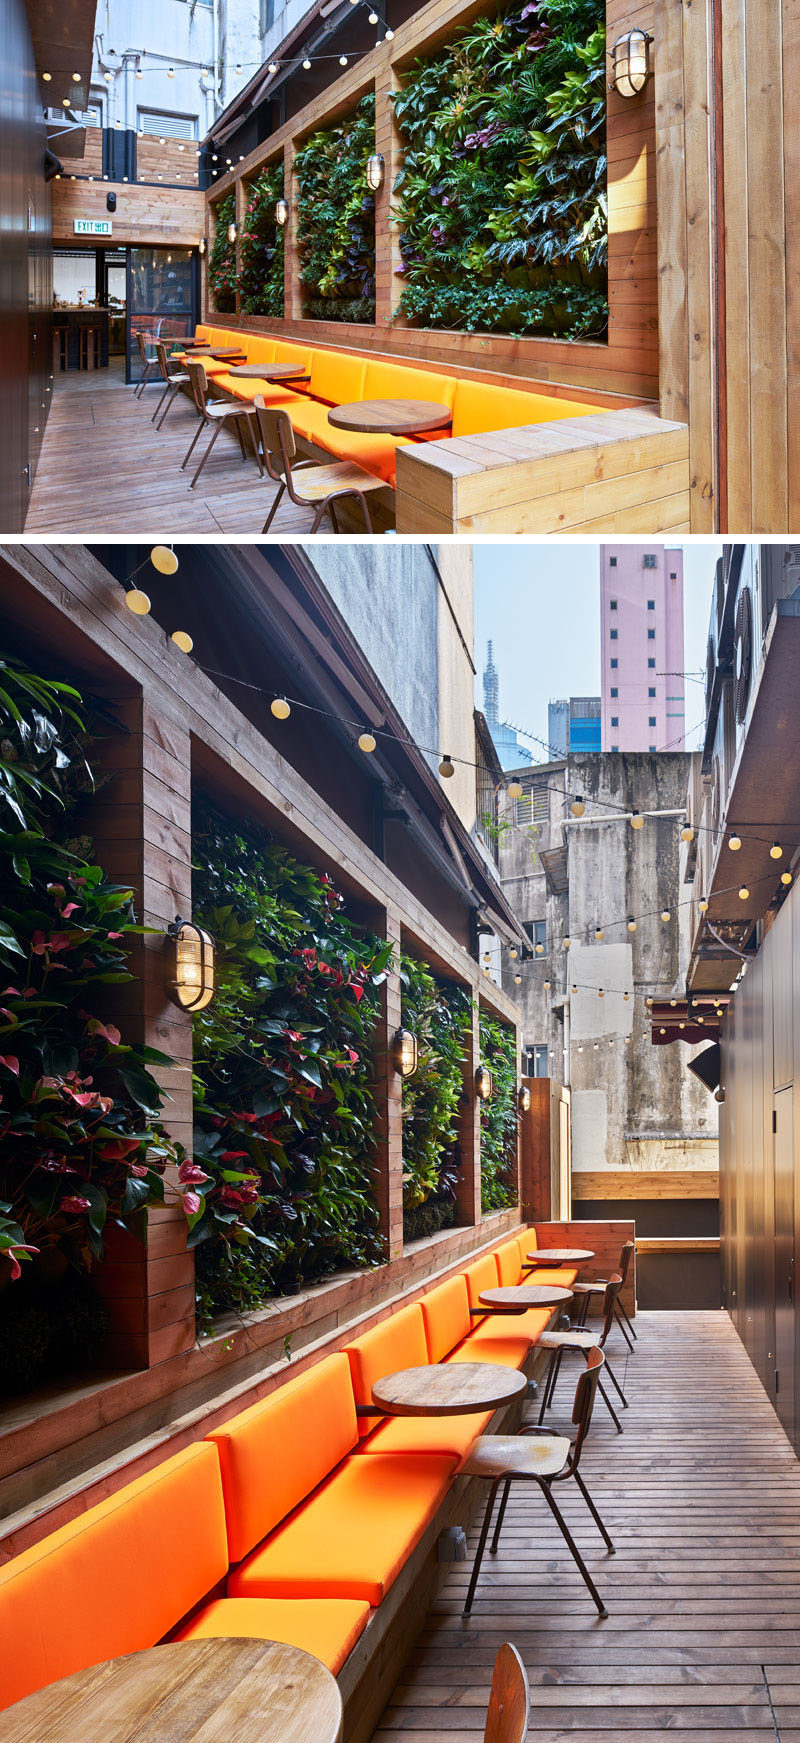 This modern coffee shop has an outdoor patio area with a living green wall and a zigzag string of lights above the seating area add a whimsical touch.